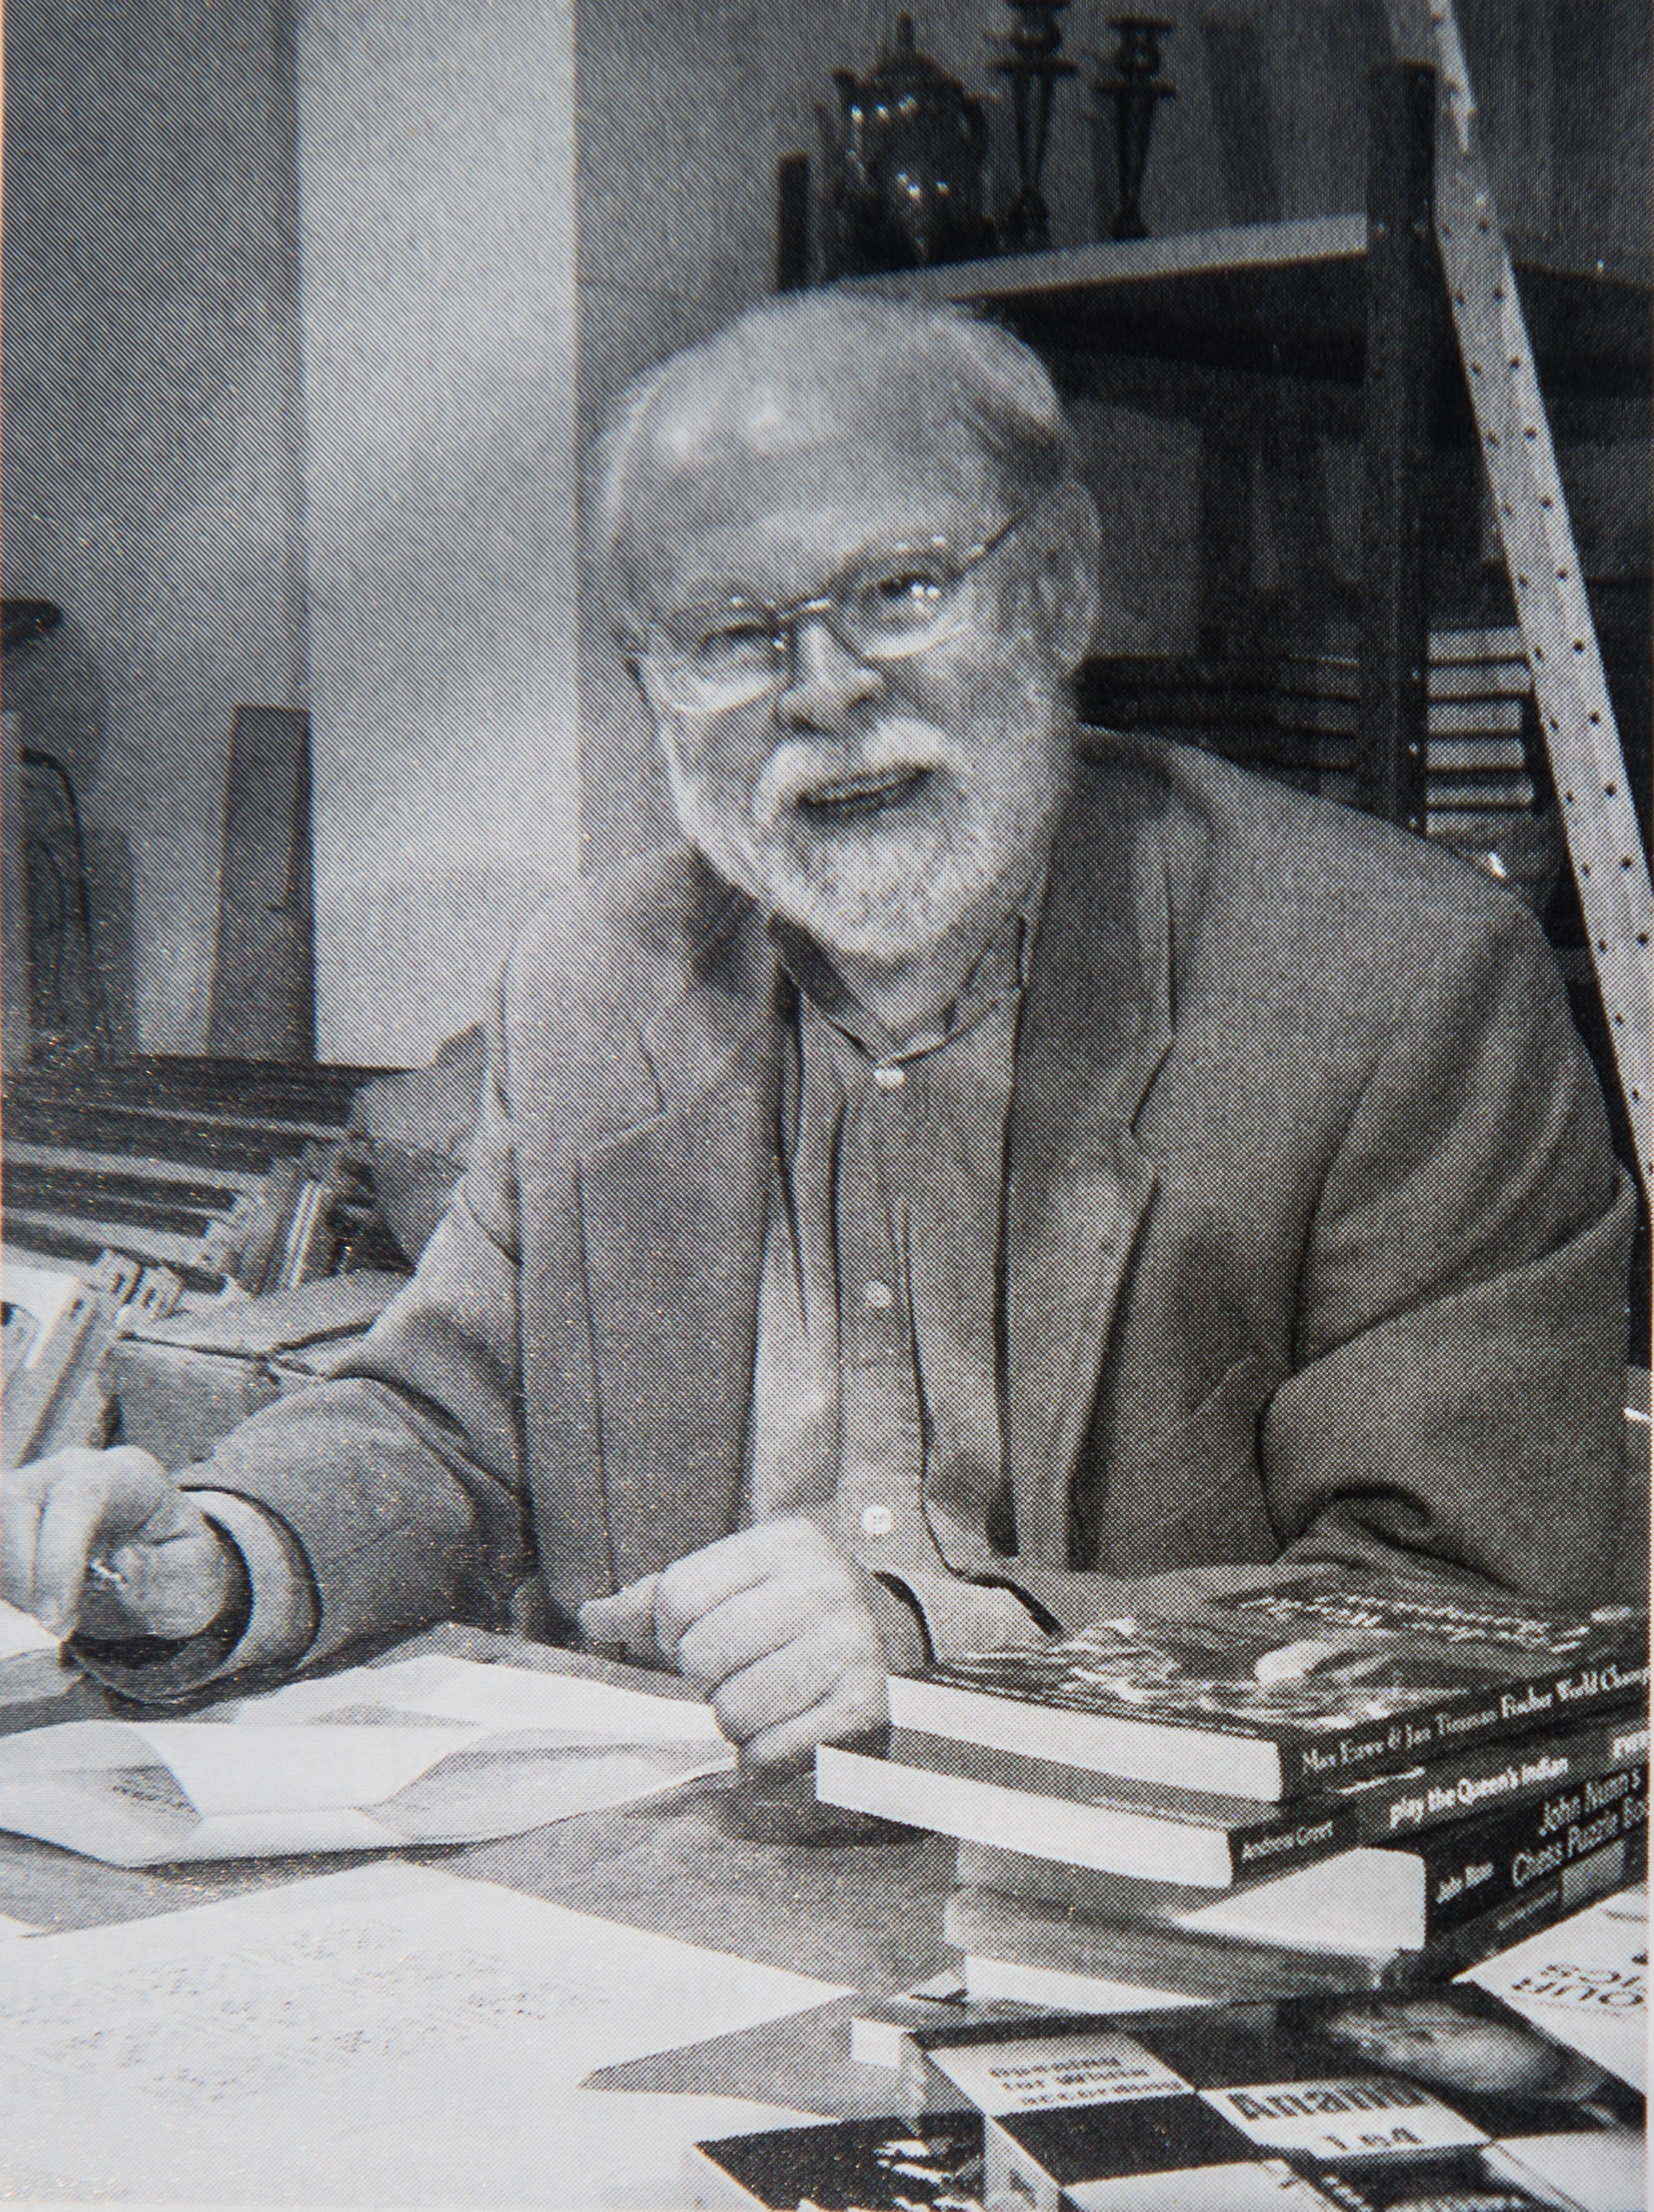 Associate Editor Bernard Cafferty,at work on the magazine in the BCM office, BCM, Volume 130, Number 8, p. 428